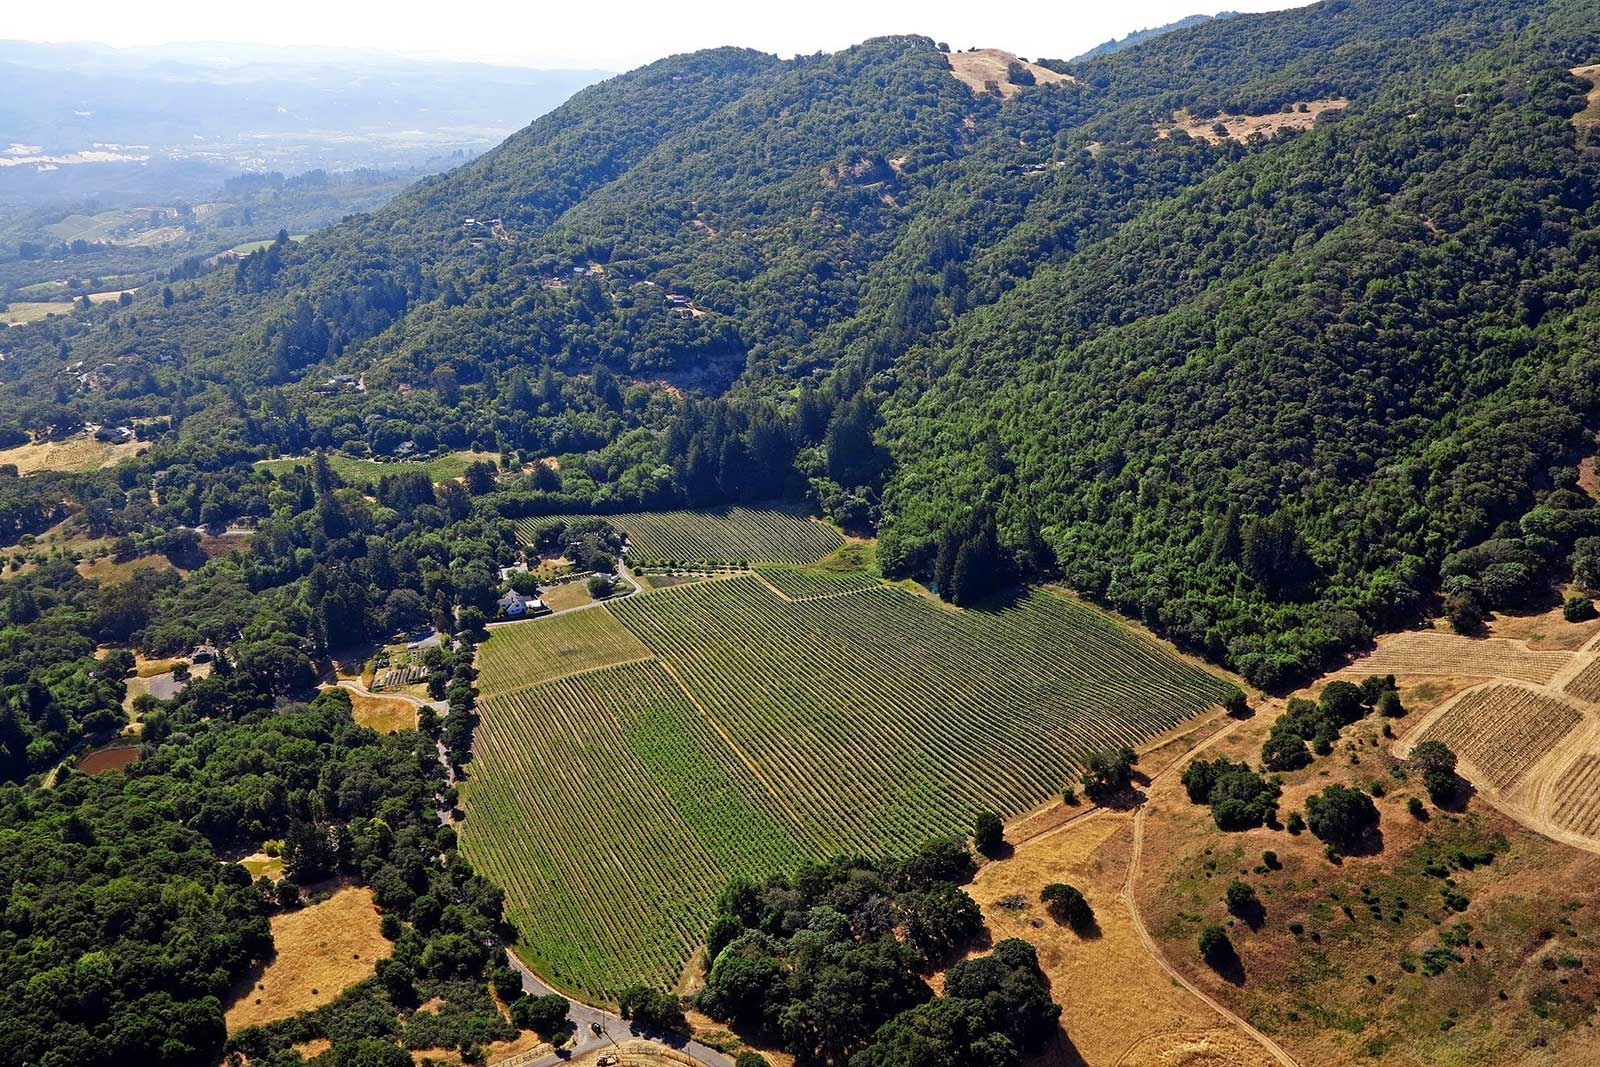 An aerial view of the Van Der Kamp Vineyard in Sonoma, where La Pitchoune sources some of their Pinot Noir Grapes. ©La Pitchoune